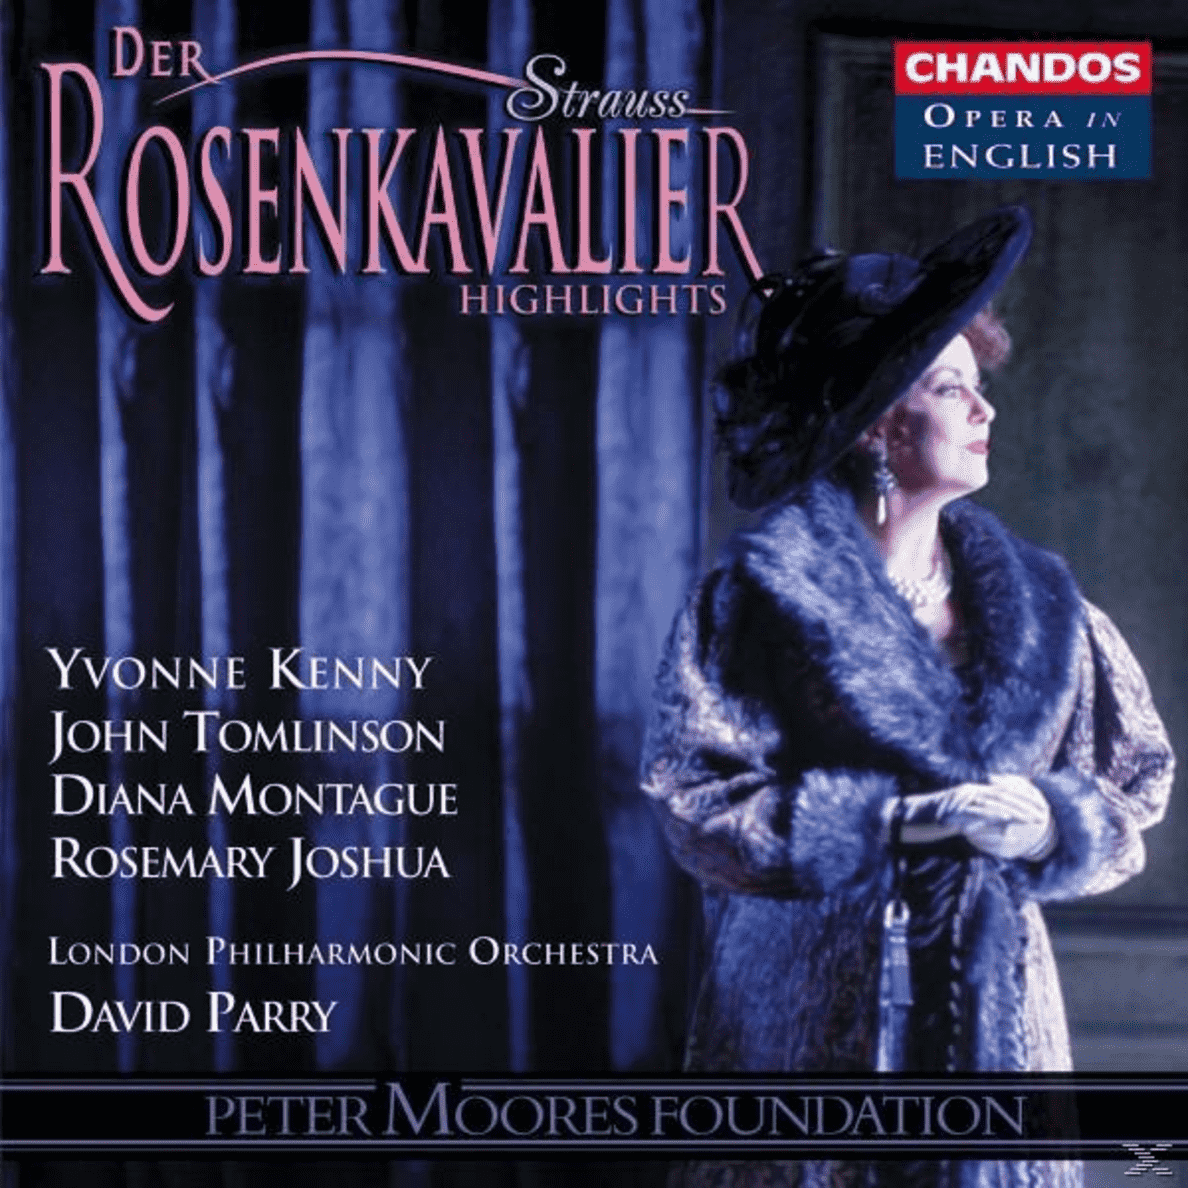 Der Rosenkavalier (QS) Sir Charles Hubert Hastings Parry, Lpo, Geoffrey M.Choir, Parry/LPO/Geoffrey M.Choir auf CD